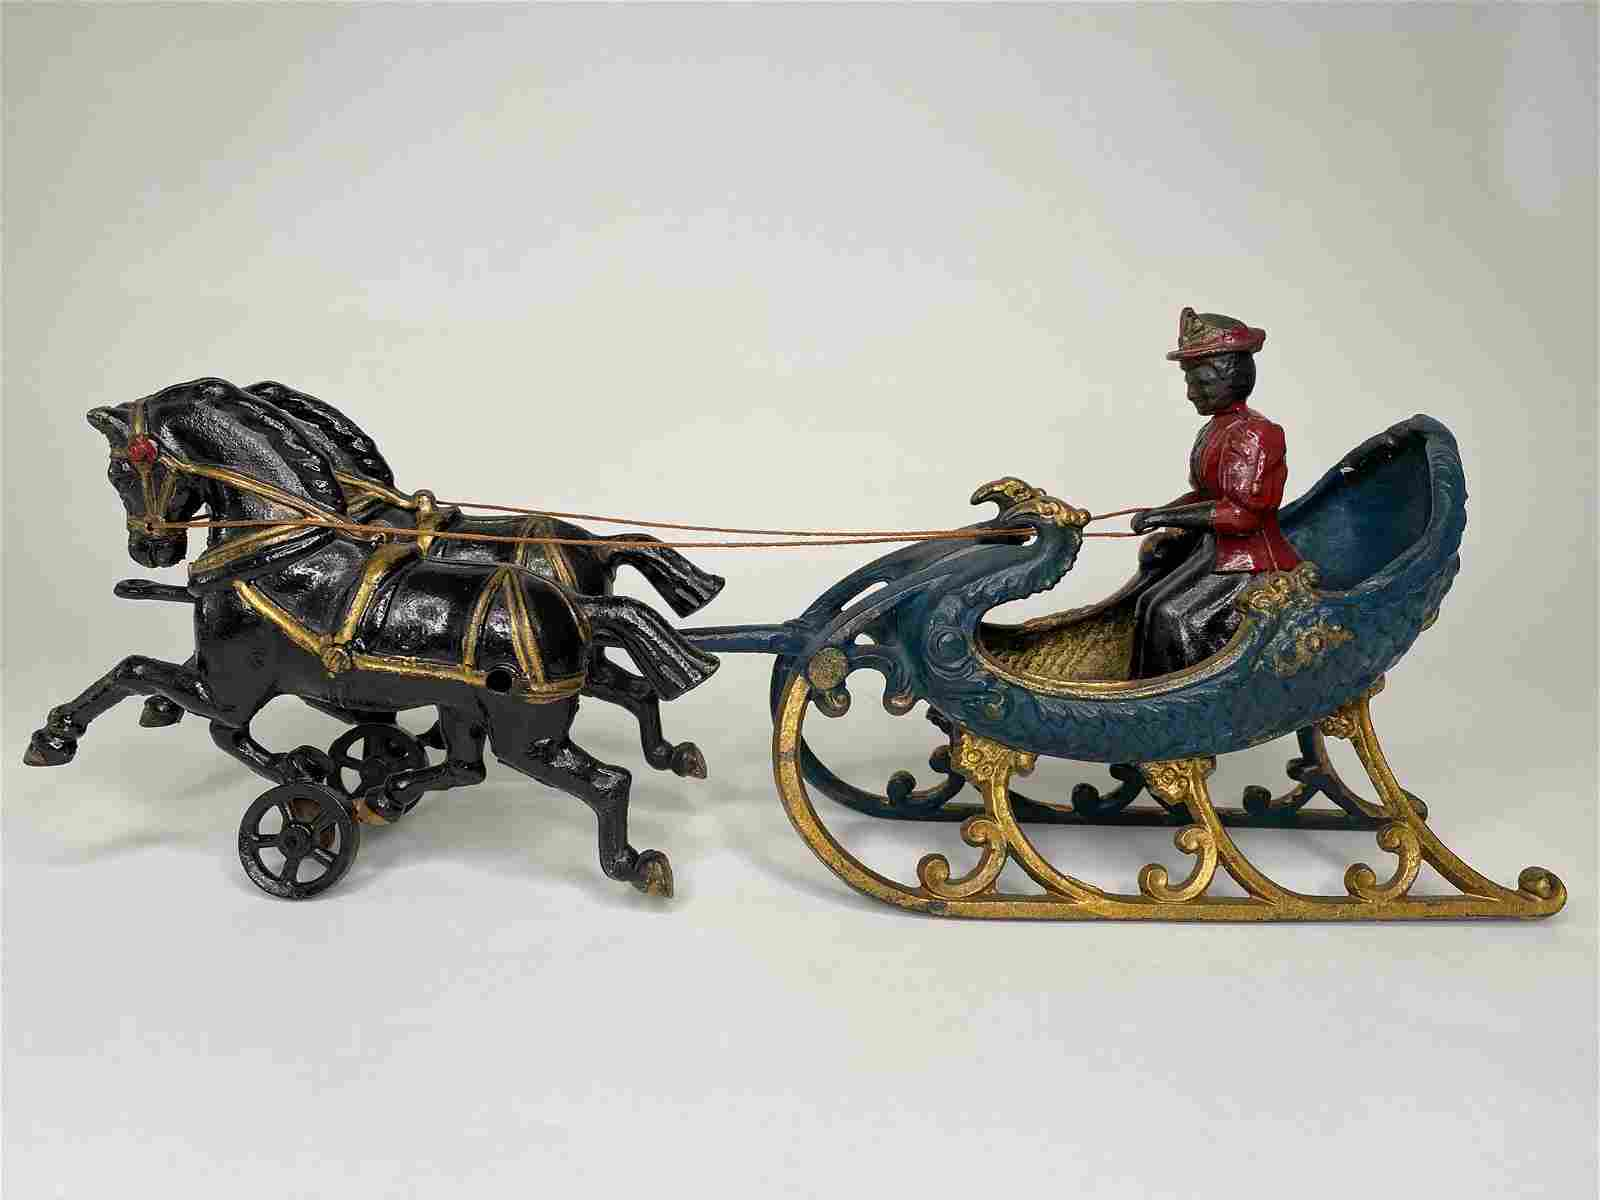 Woman in Horsedrawn Sleigh